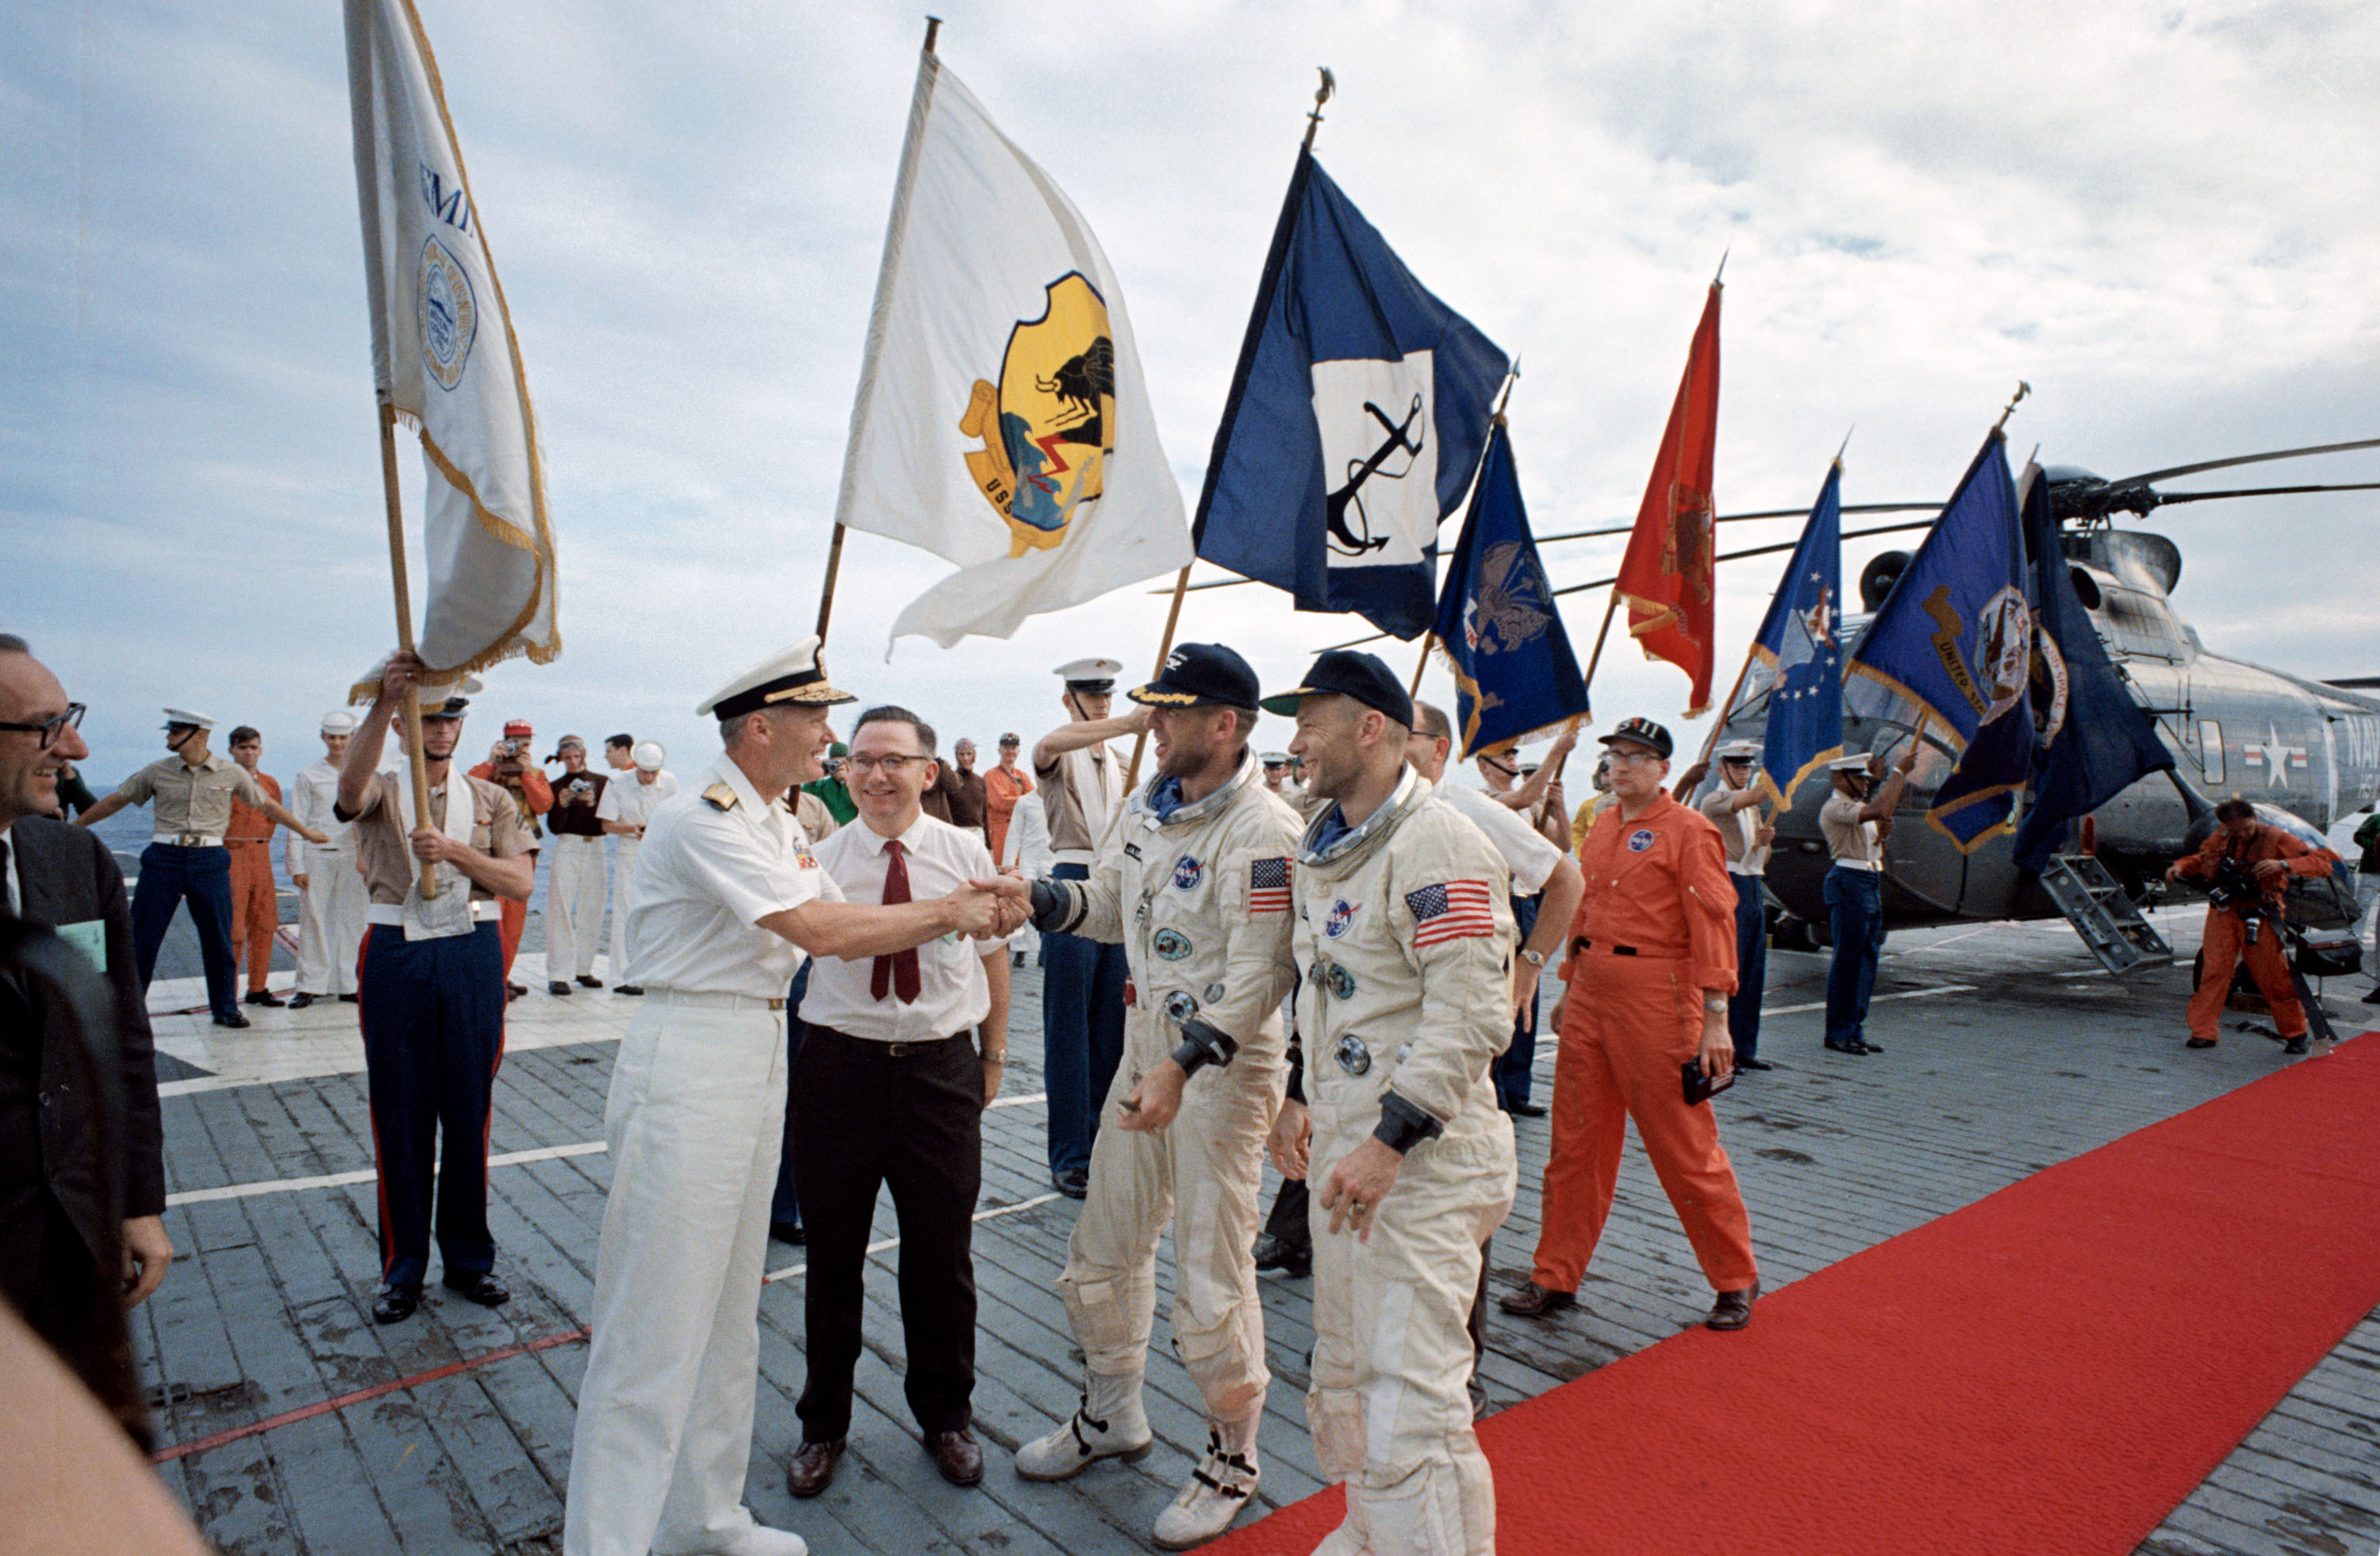 Astronauts James A. Lovell Jr. (left), command pilot, and Edwin E. Aldrin Jr., pilot, receive official welcome as they arrive aboard the aircraft carrier USS Wasp. Gemini-12 splashed down in the Atlantic Ocean recovery area at 2:21 p.m. (EST), Nov. 15, 1966.